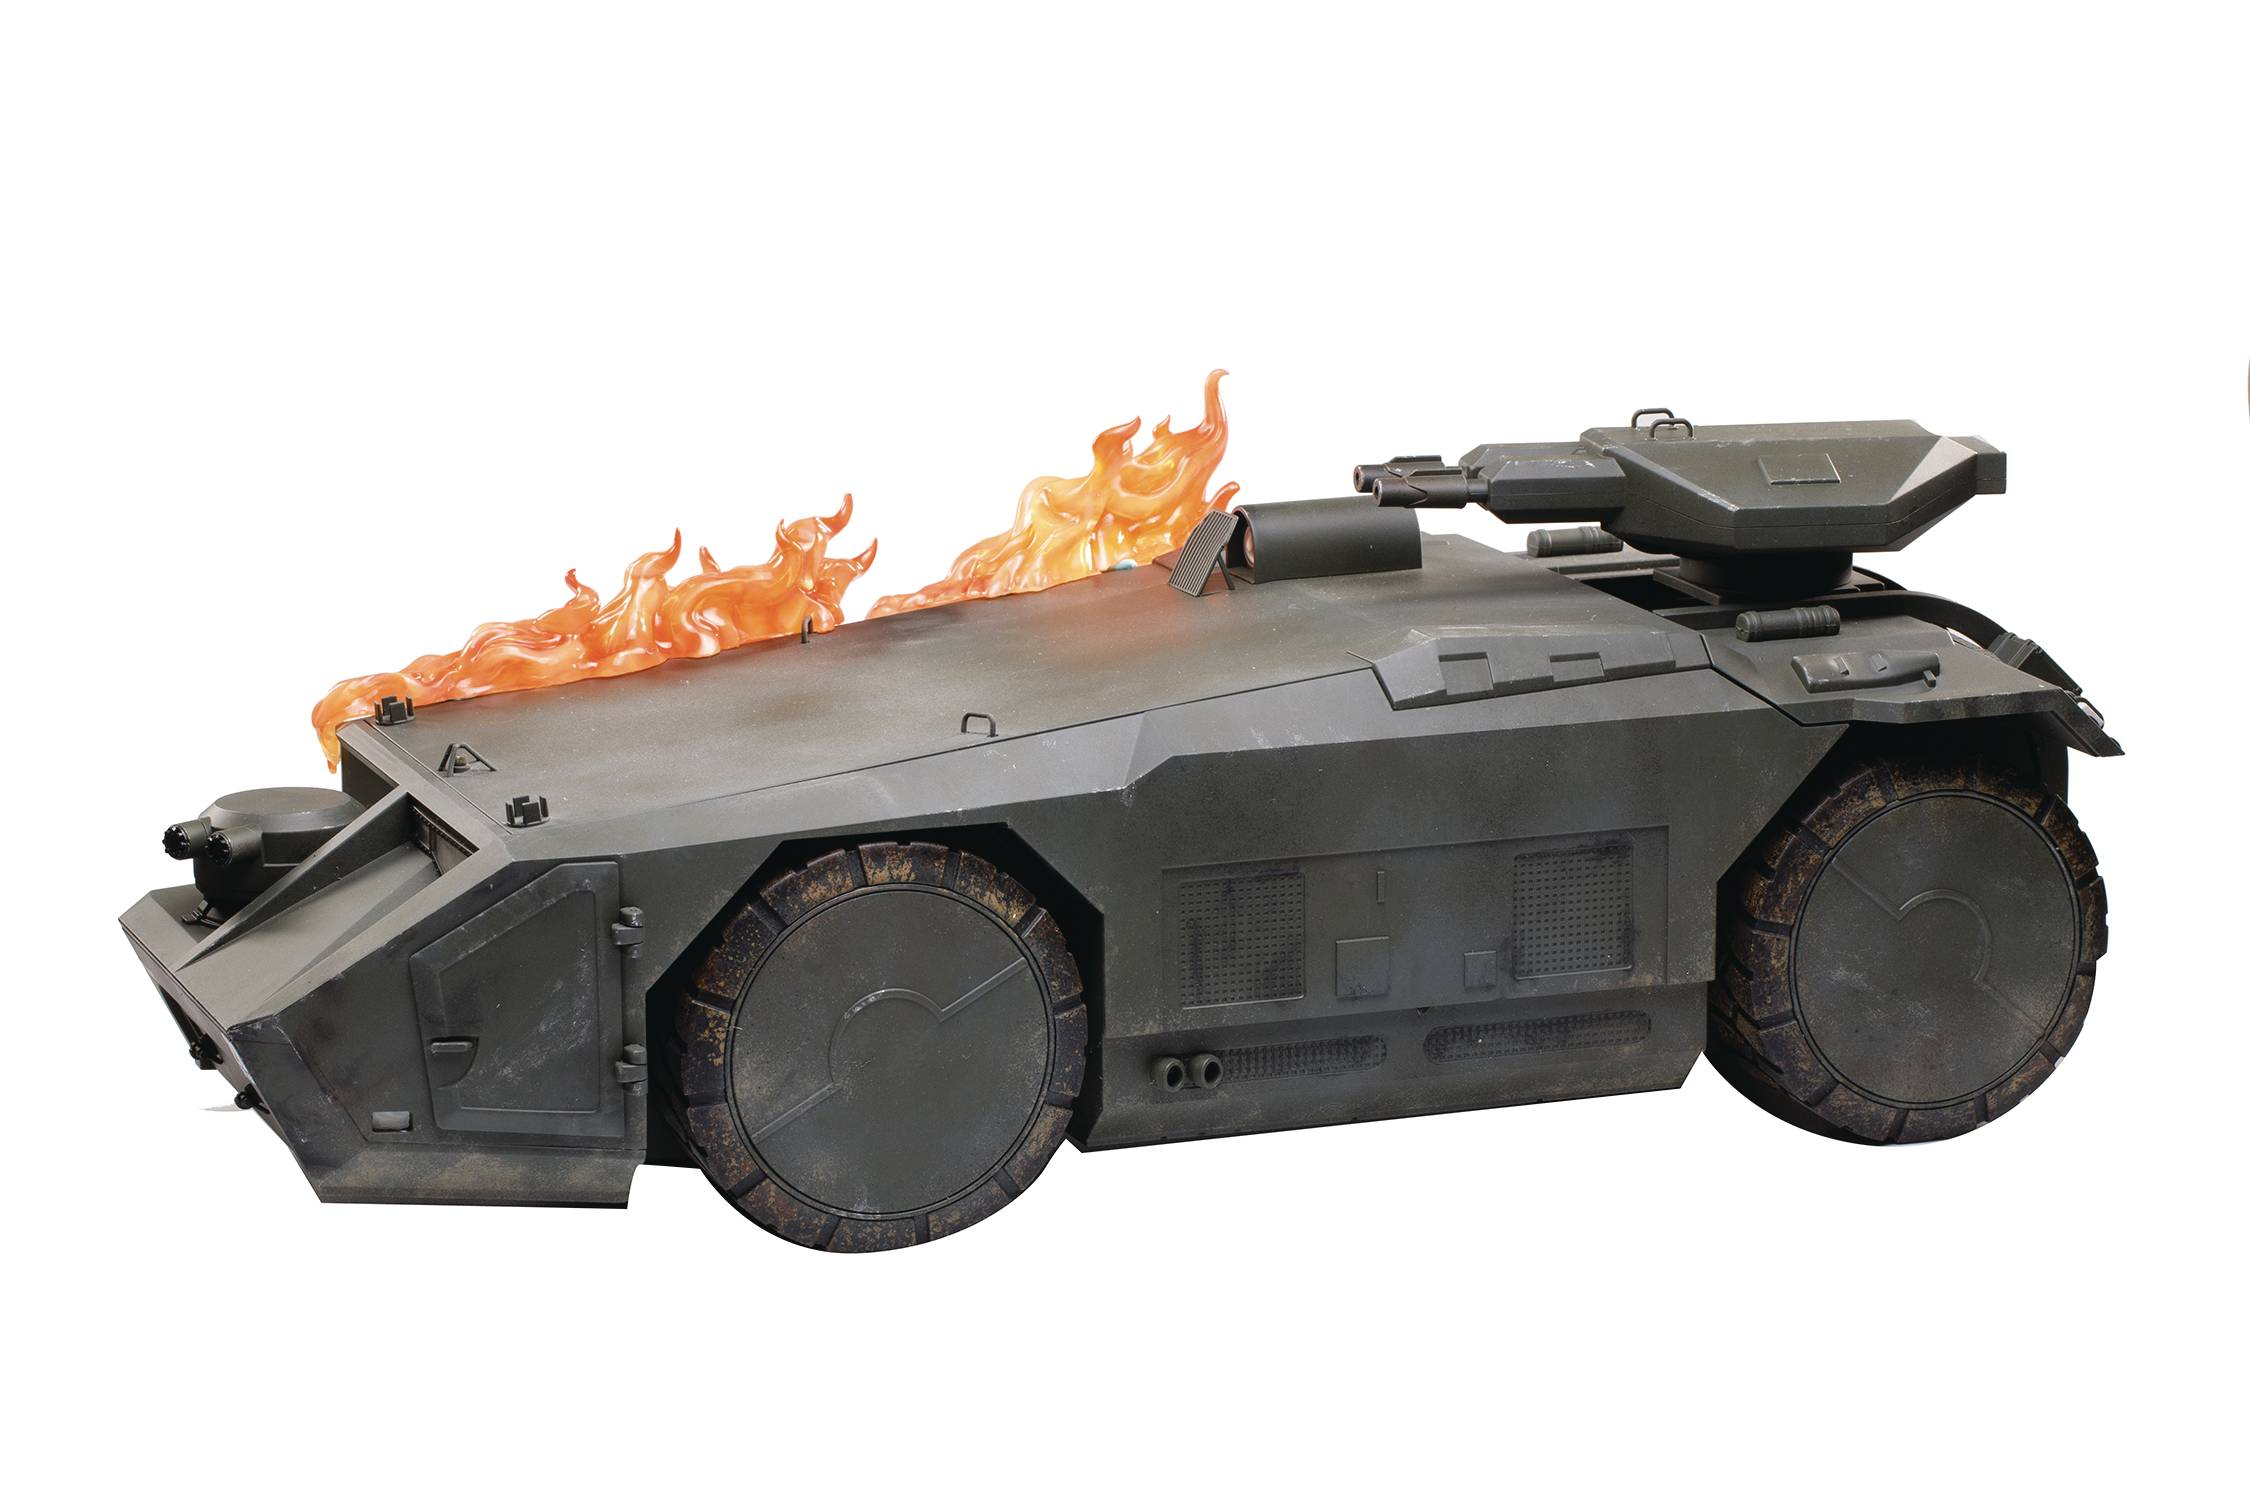 ALIENS BURNING ARMORED PERSONNEL CARRIER PX 1/18 SCALE VEH (